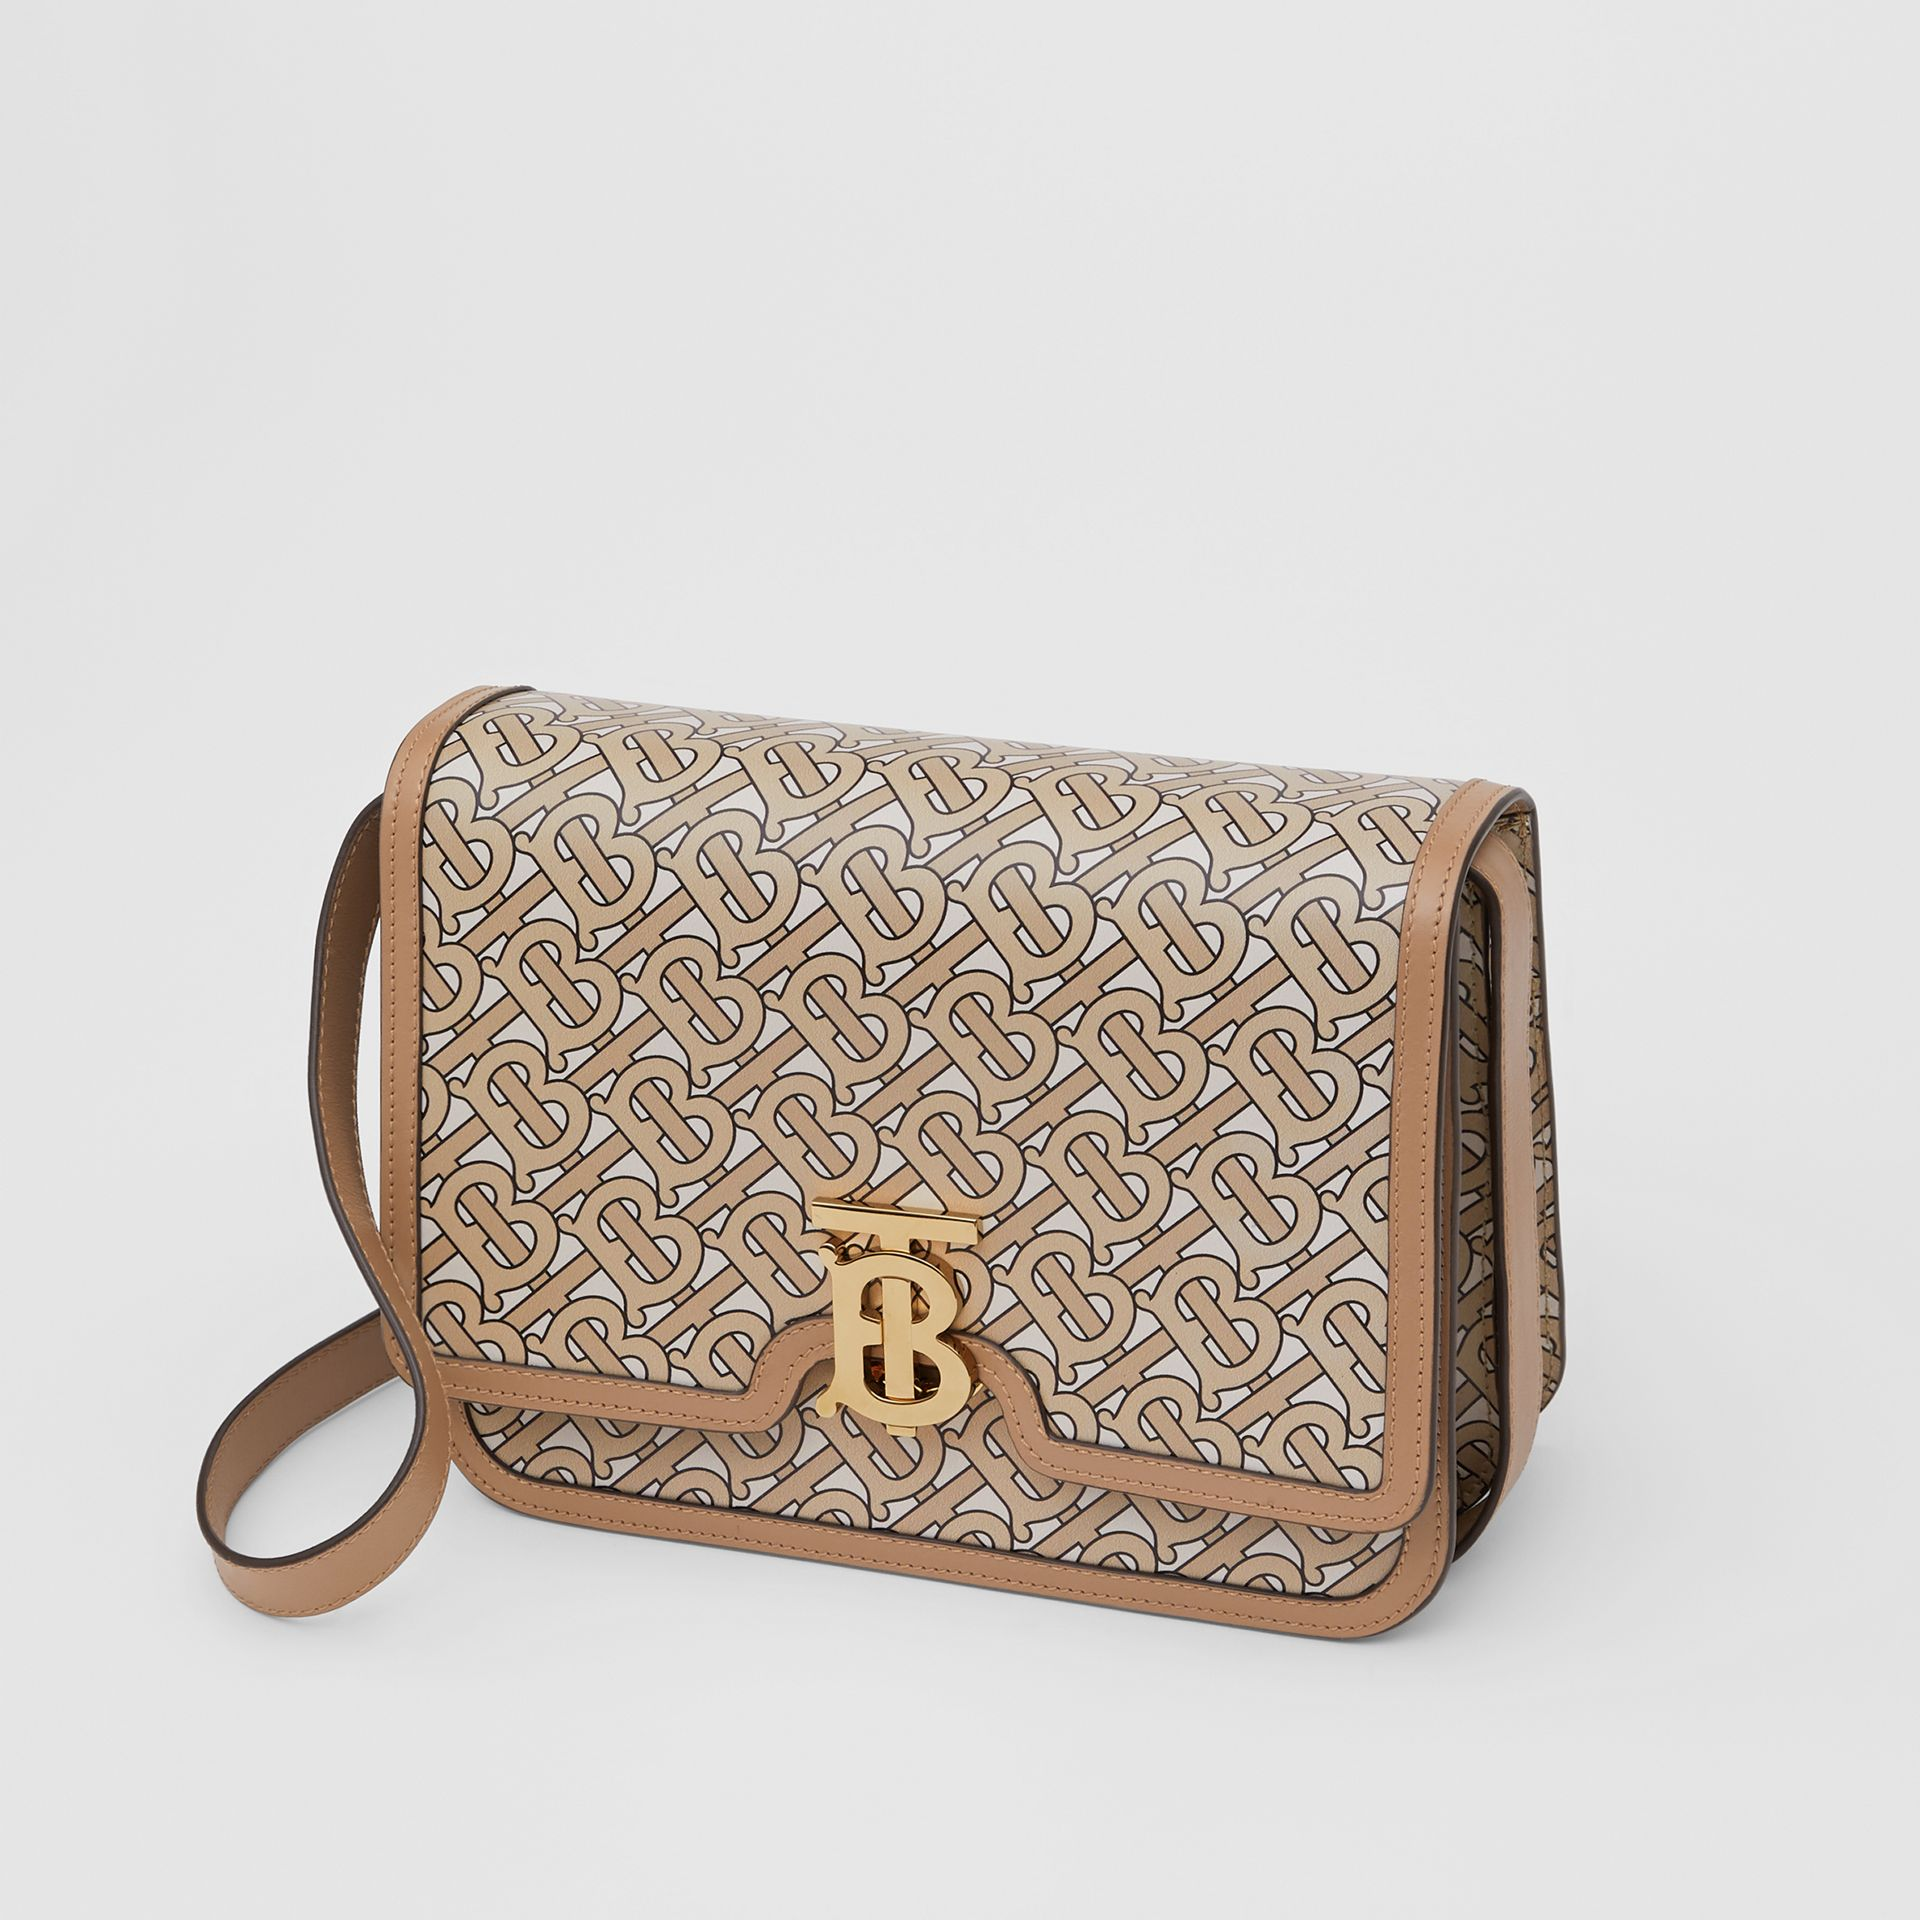 Medium Monogram Print Leather TB Bag in Beige - Women | Burberry Australia - gallery image 3